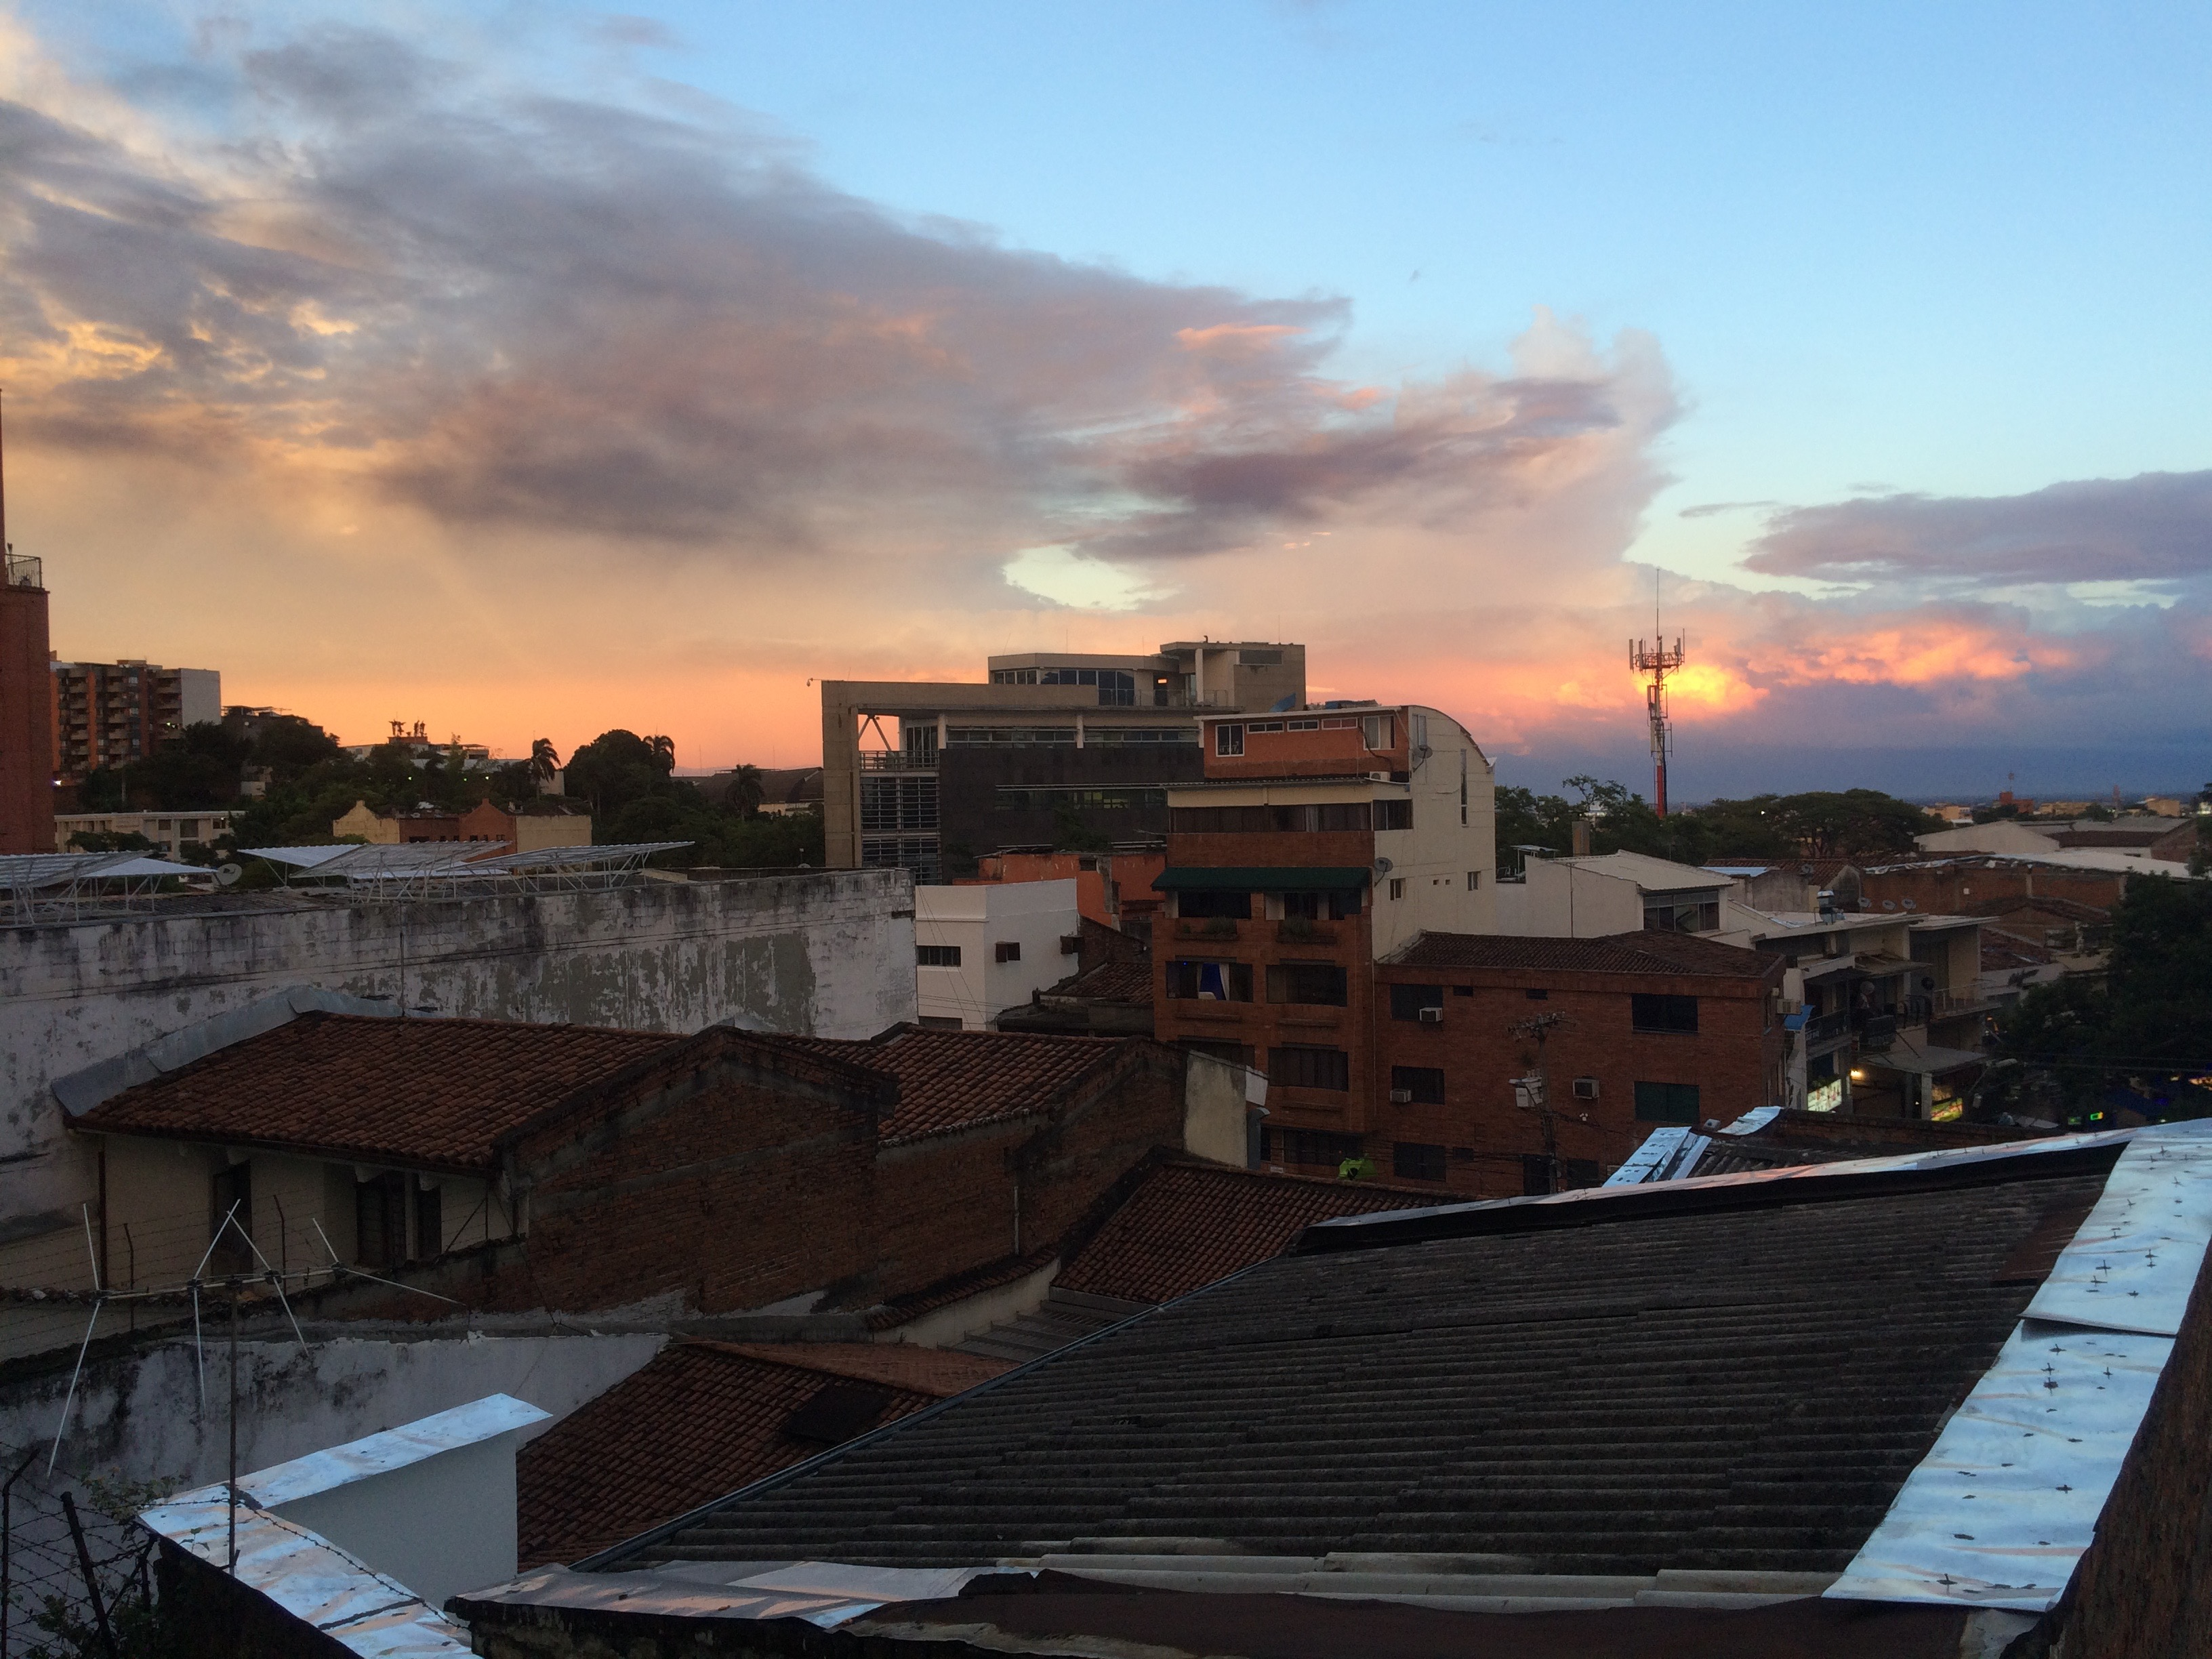 sunset in Cali, Colombia